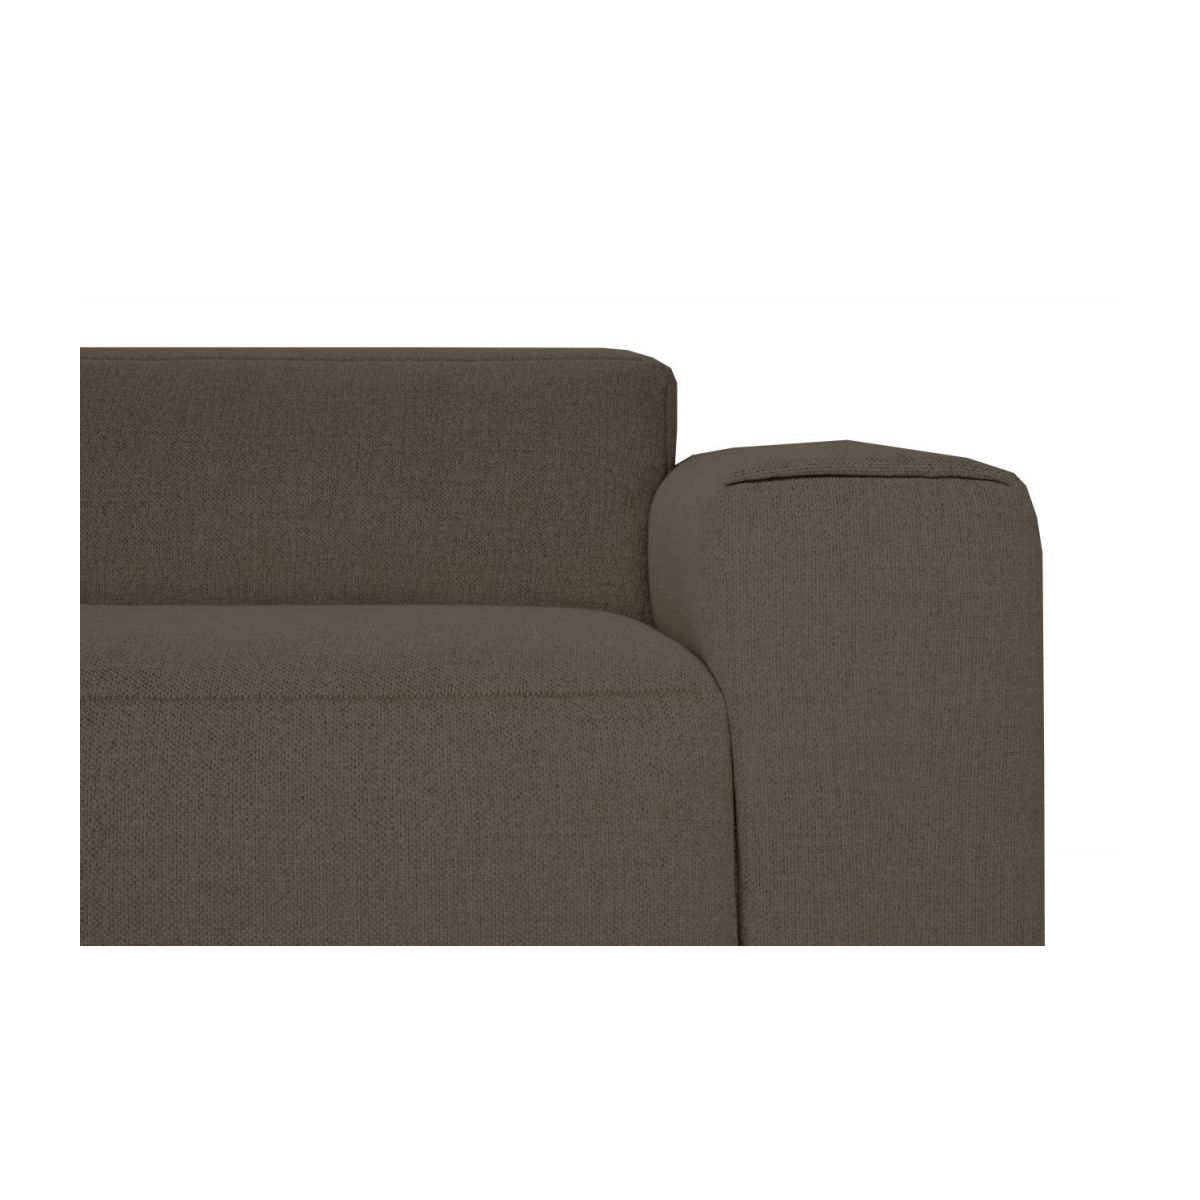 4 seater sofa in Lecce fabric, muscat n°4